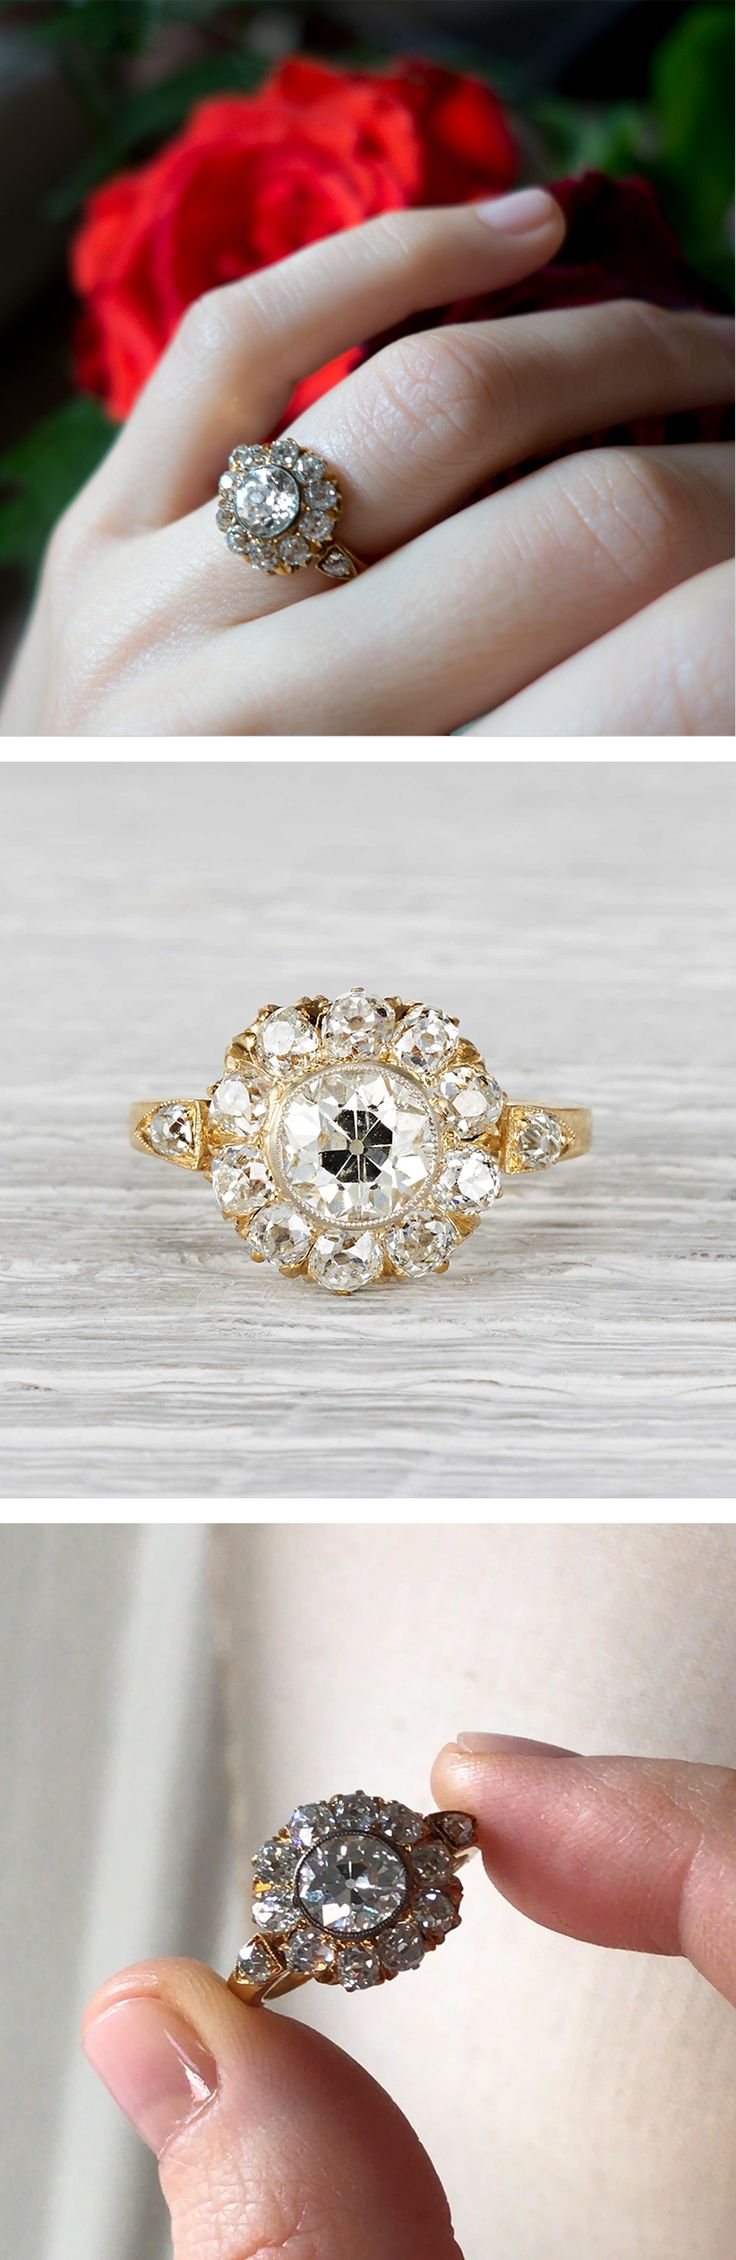 Vintage Victorian cluster ring made in 18k yellow gold and centered with an approximately 1.08 carat EGL certified old European cut diamond with I-J color and SI1 clarity. Surrounded by 10 old European cut diamonds weighing